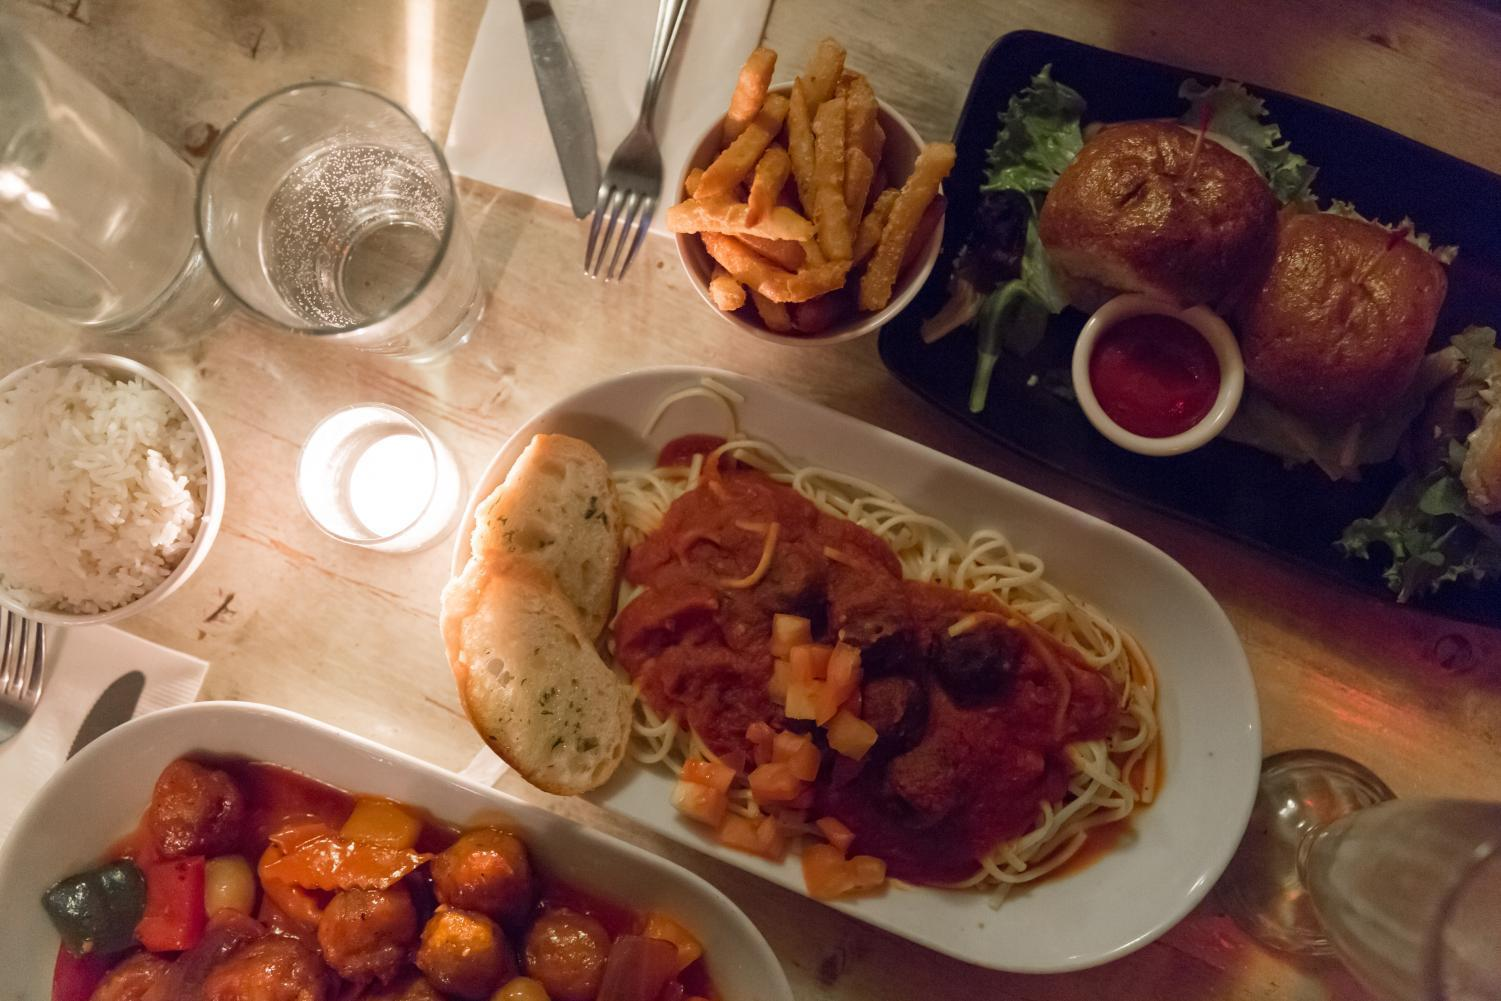 Sweet and sour chicken with white rice, spaghetti and meatballs with garlic toast, and sausage sliders with French fries.